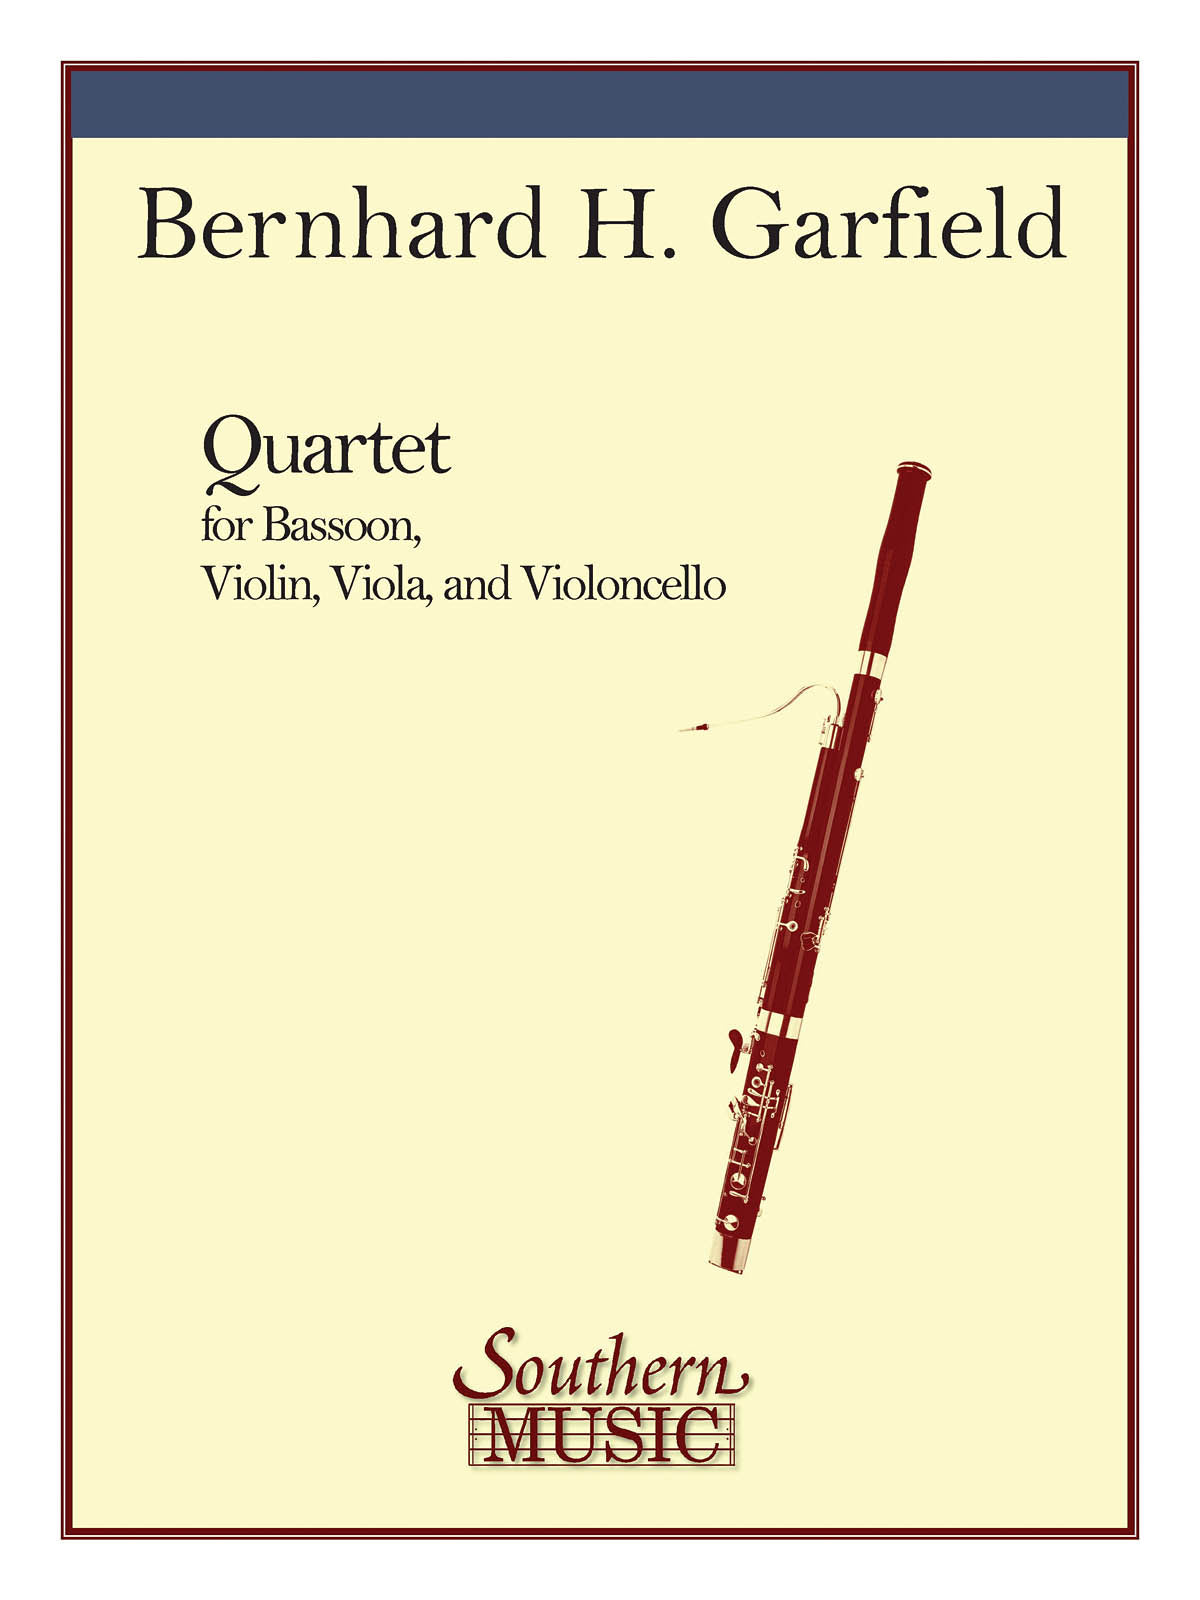 Garfield: Quartet for String Trio with Bassoon